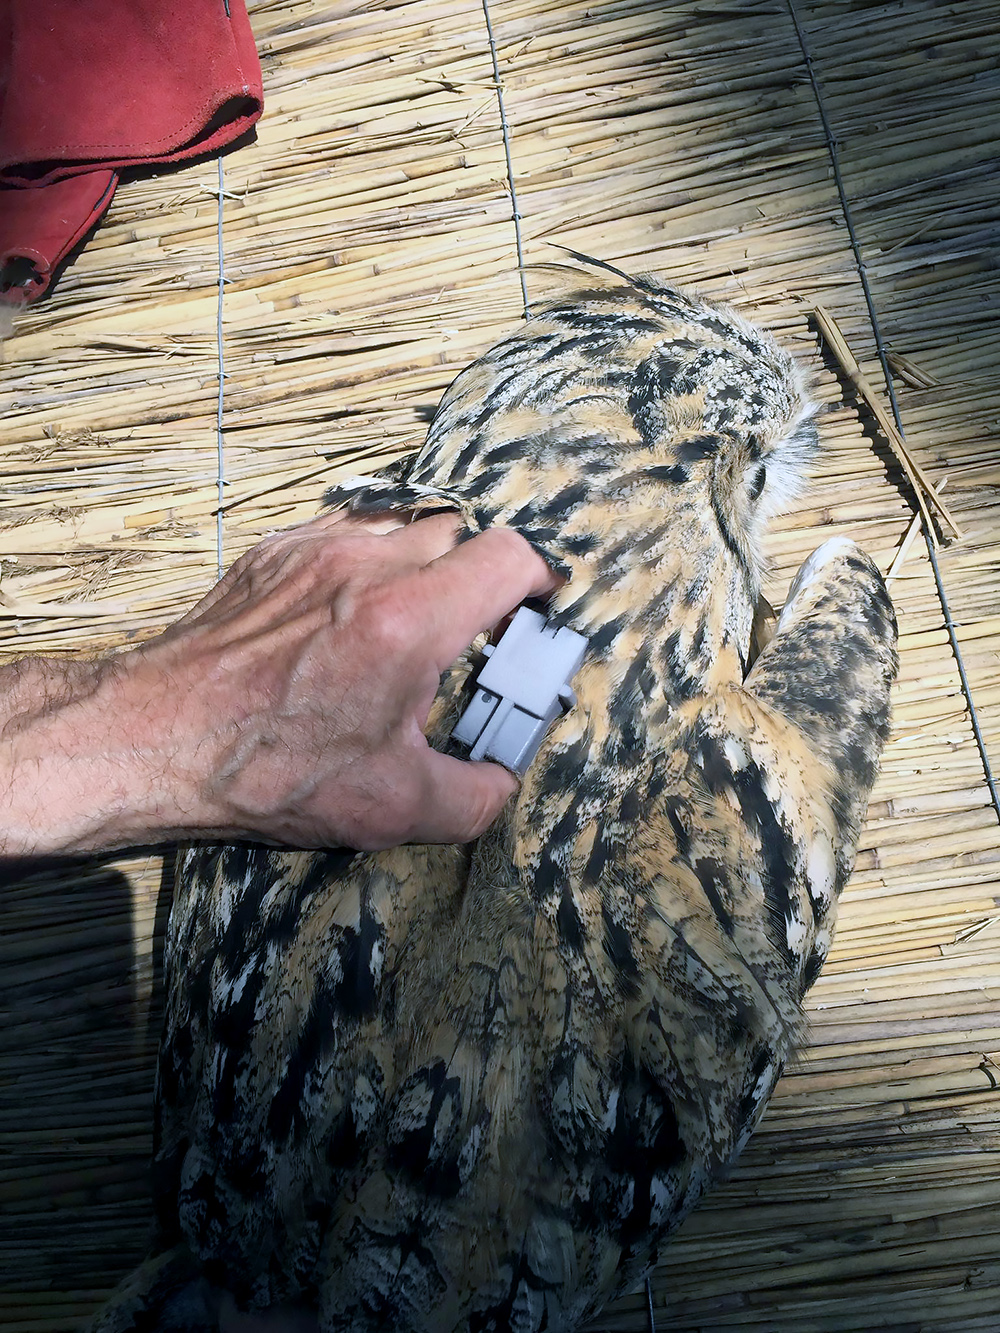 Fitting eagle owl with GPS transmitter